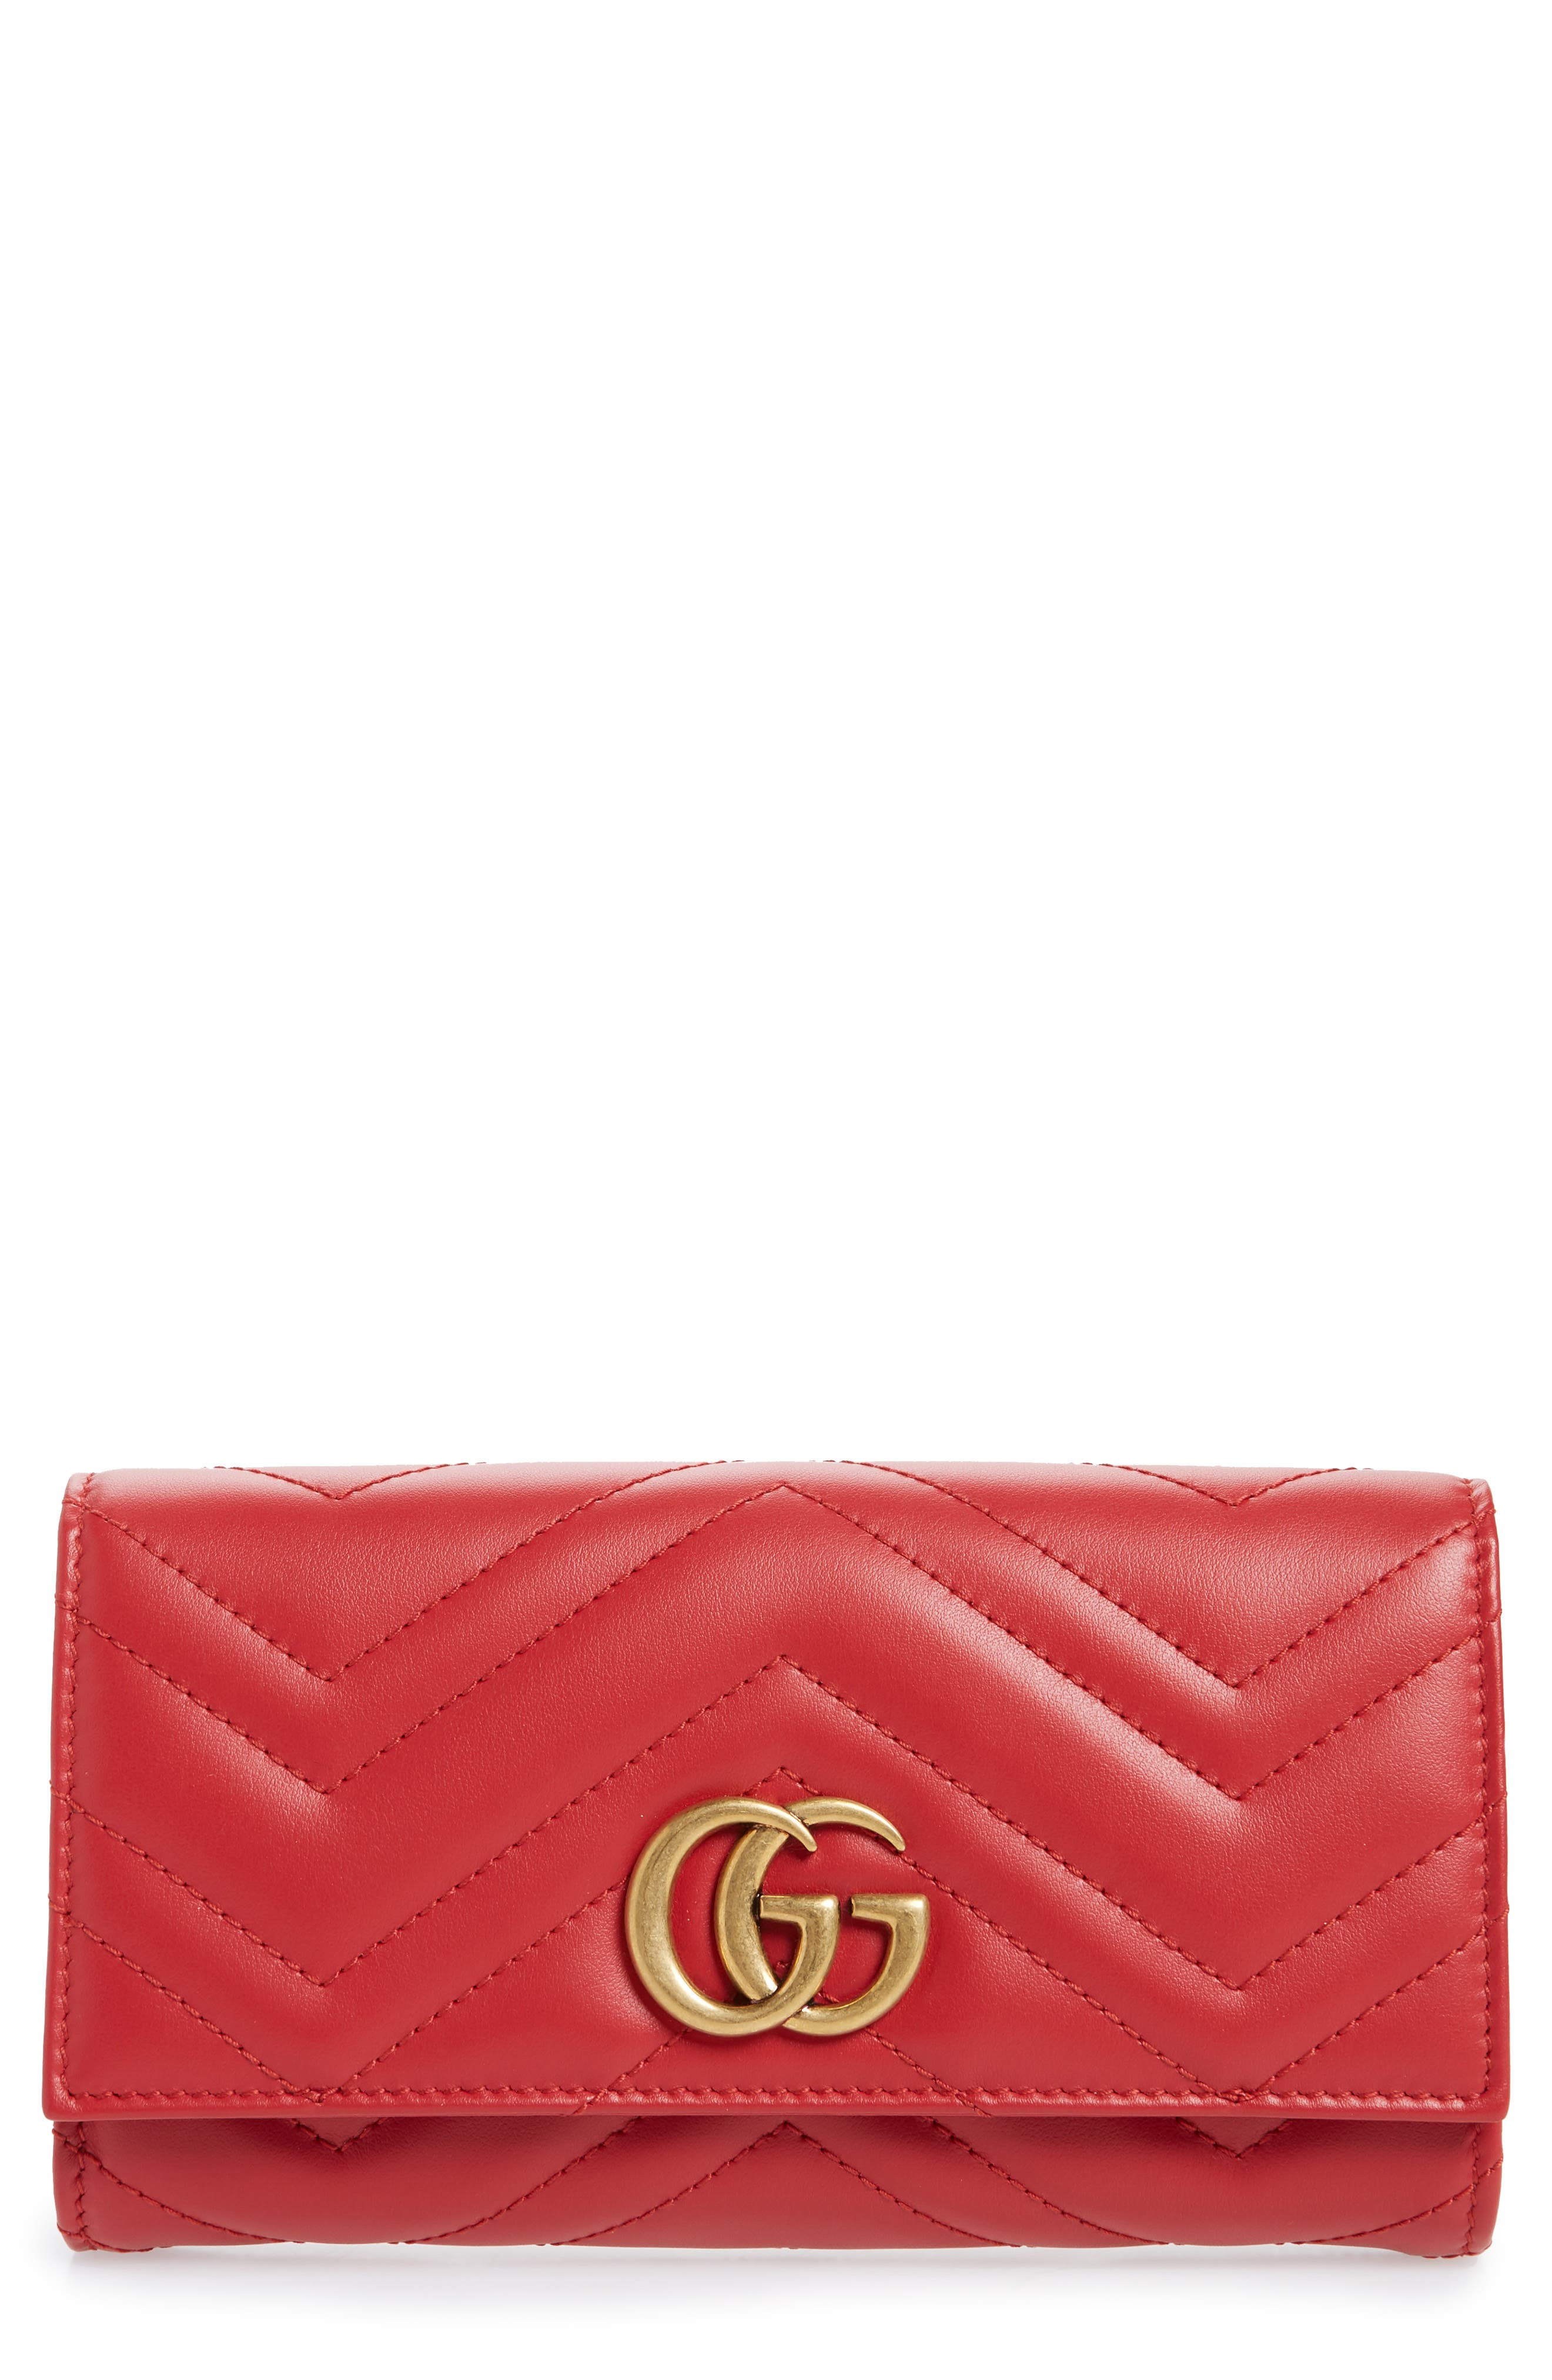 Marmont 2.0 Leather Continental Wallet,                             Main thumbnail 1, color,                             HIBISCUS RED